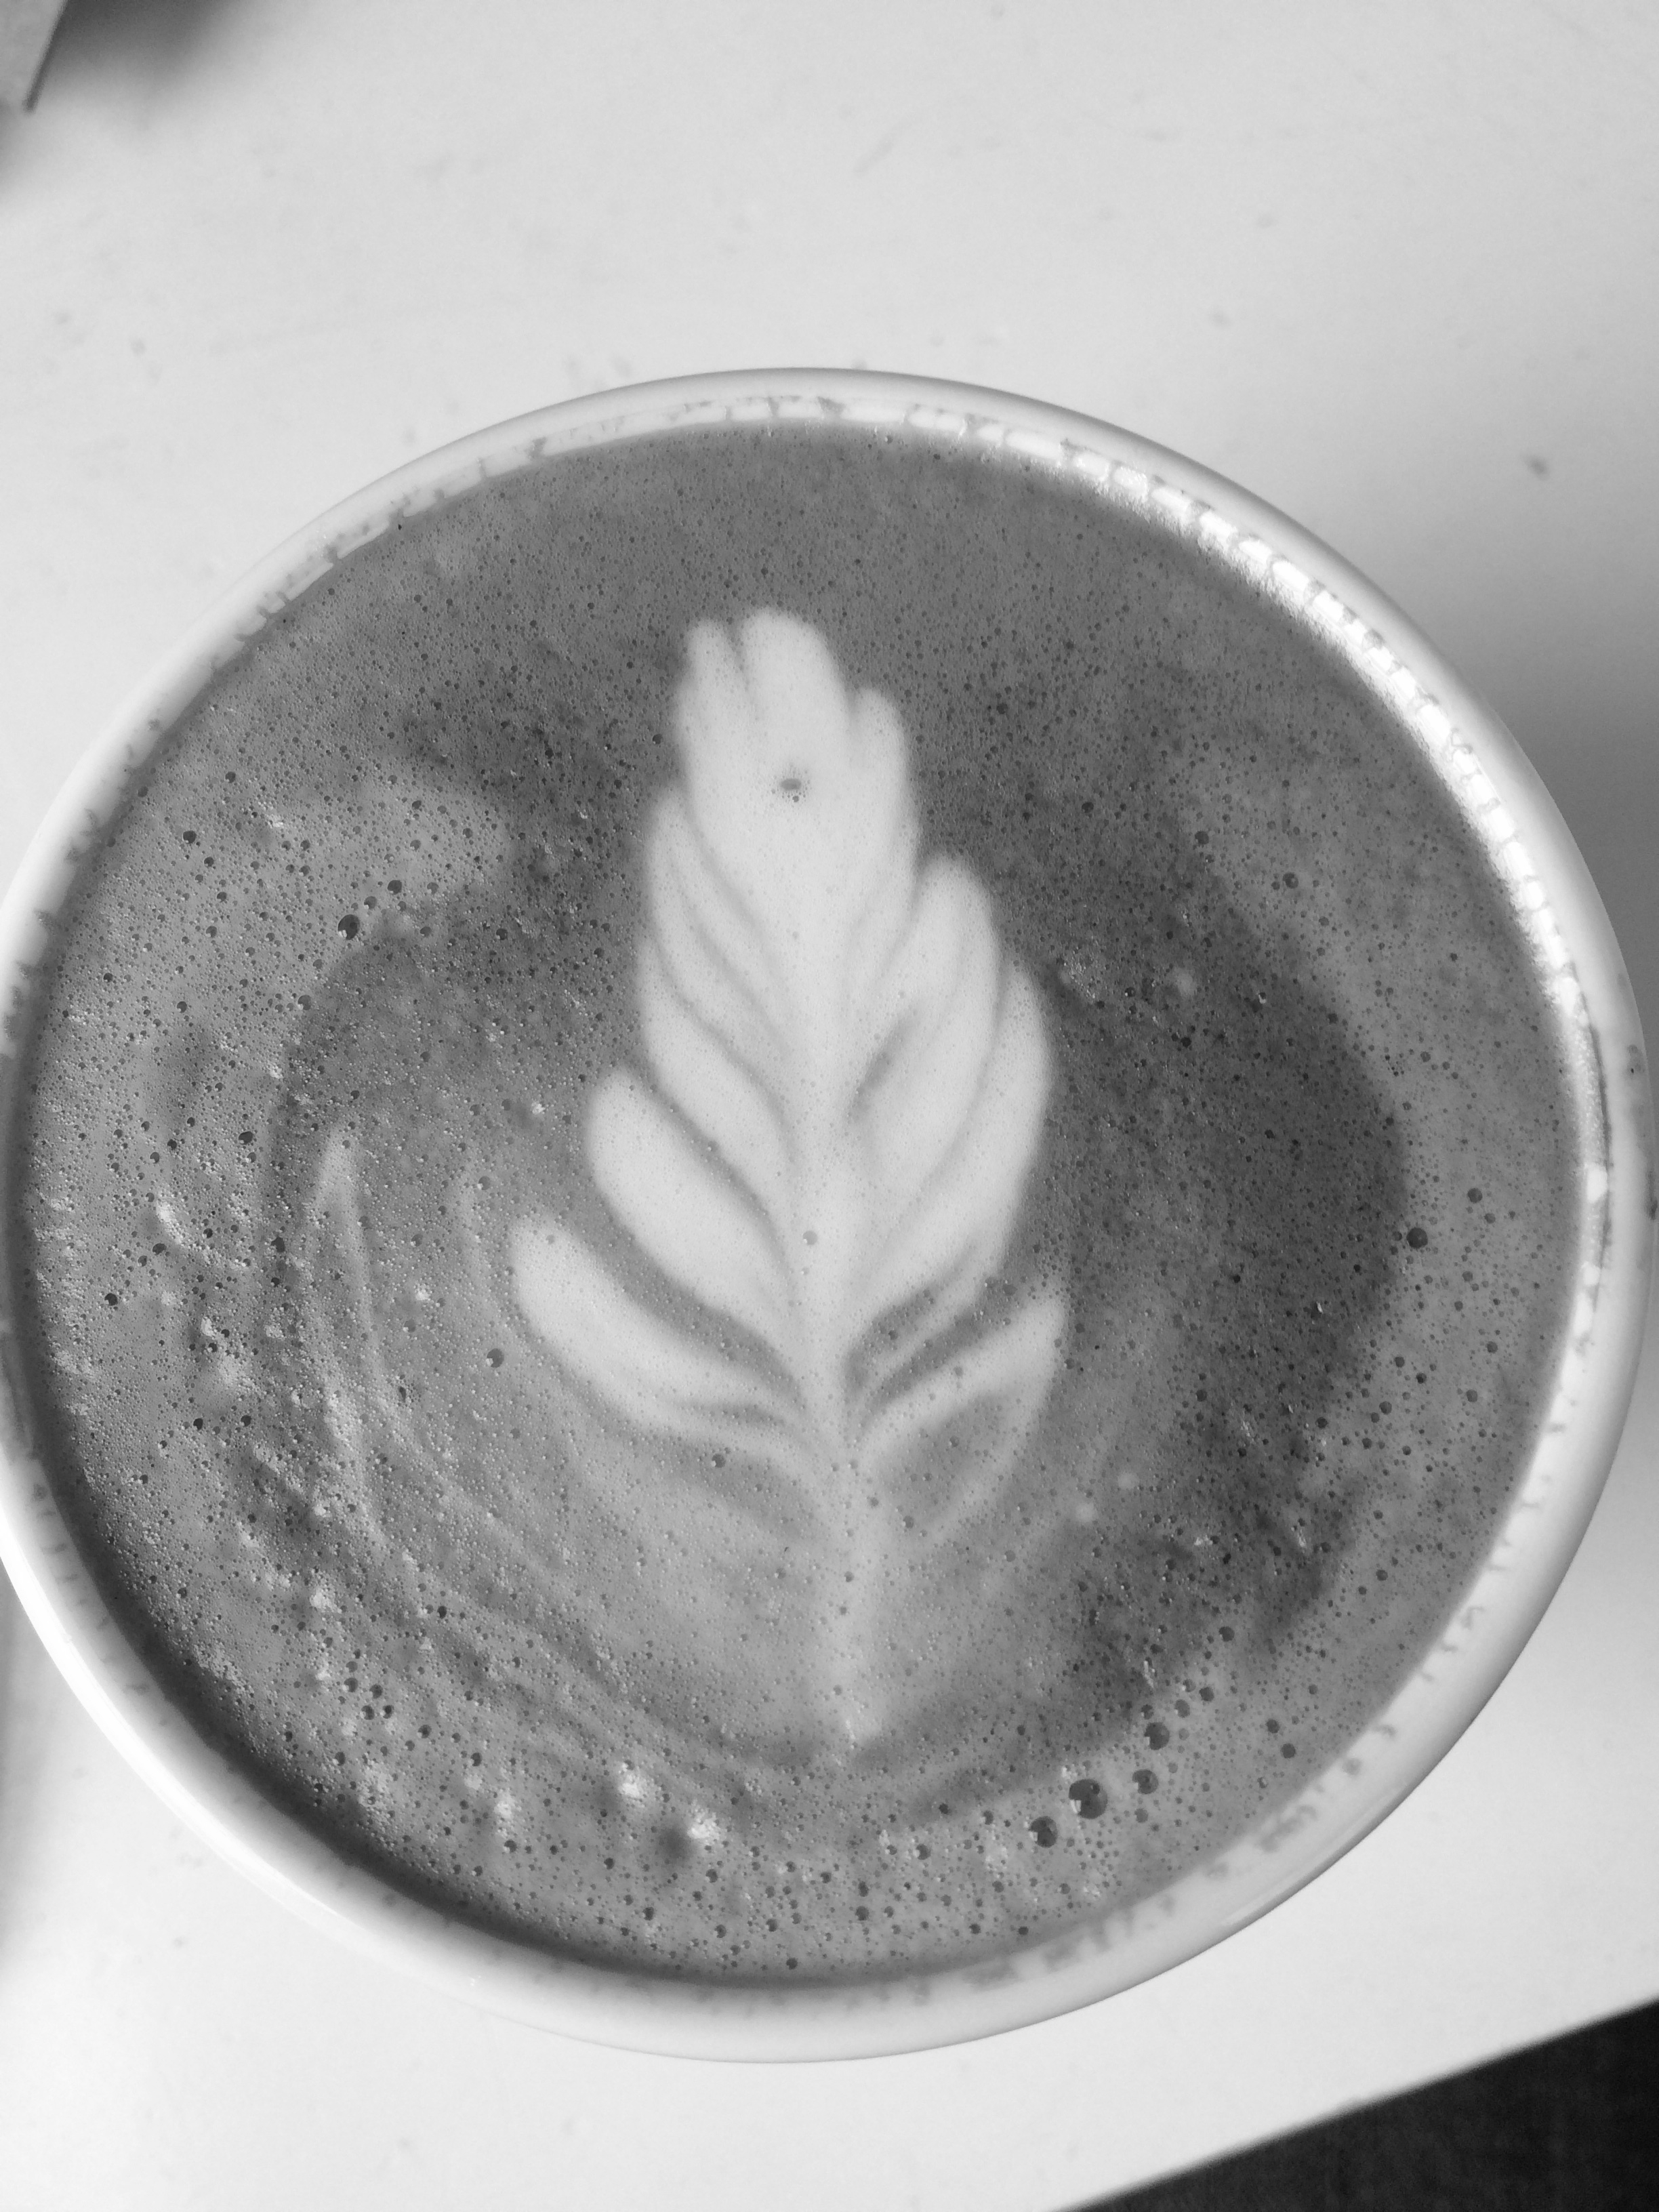 Food and Drink  Coffee, espressos, lattes, tea, hot cocoa, smoothies. beer, wine, breakfast sandwiches, breakfast burritos, skillets, lunch, salads, baked goods, dinner.